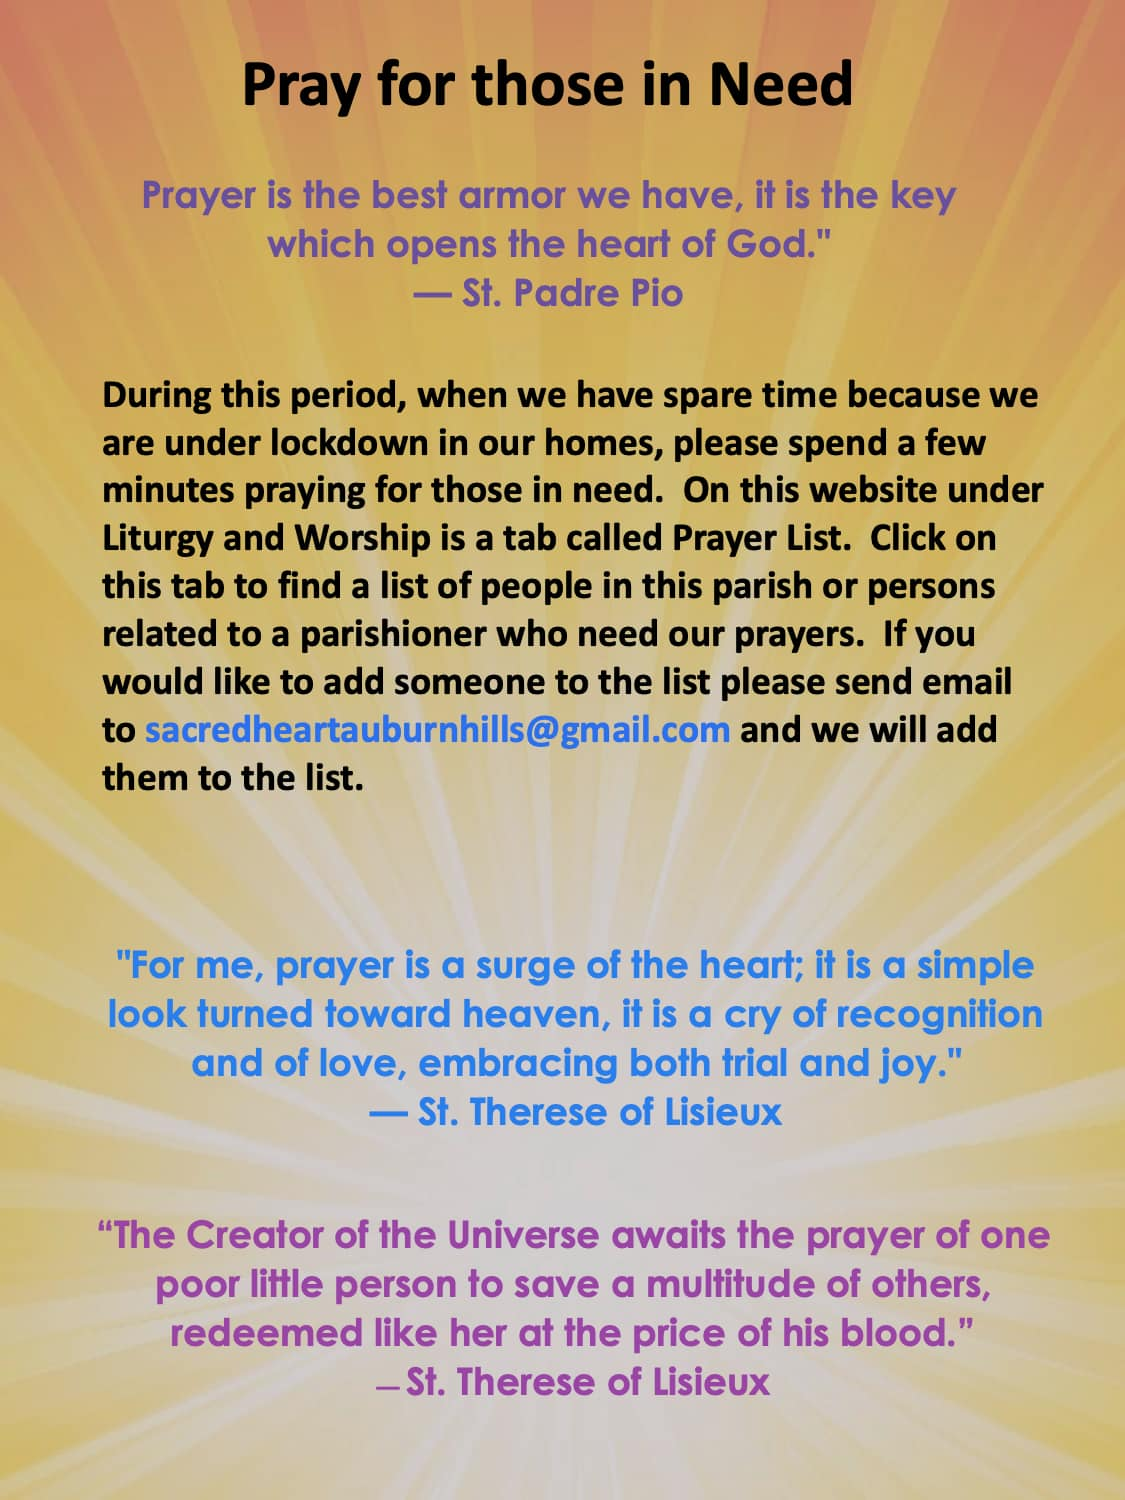 Our Prayer List intentions